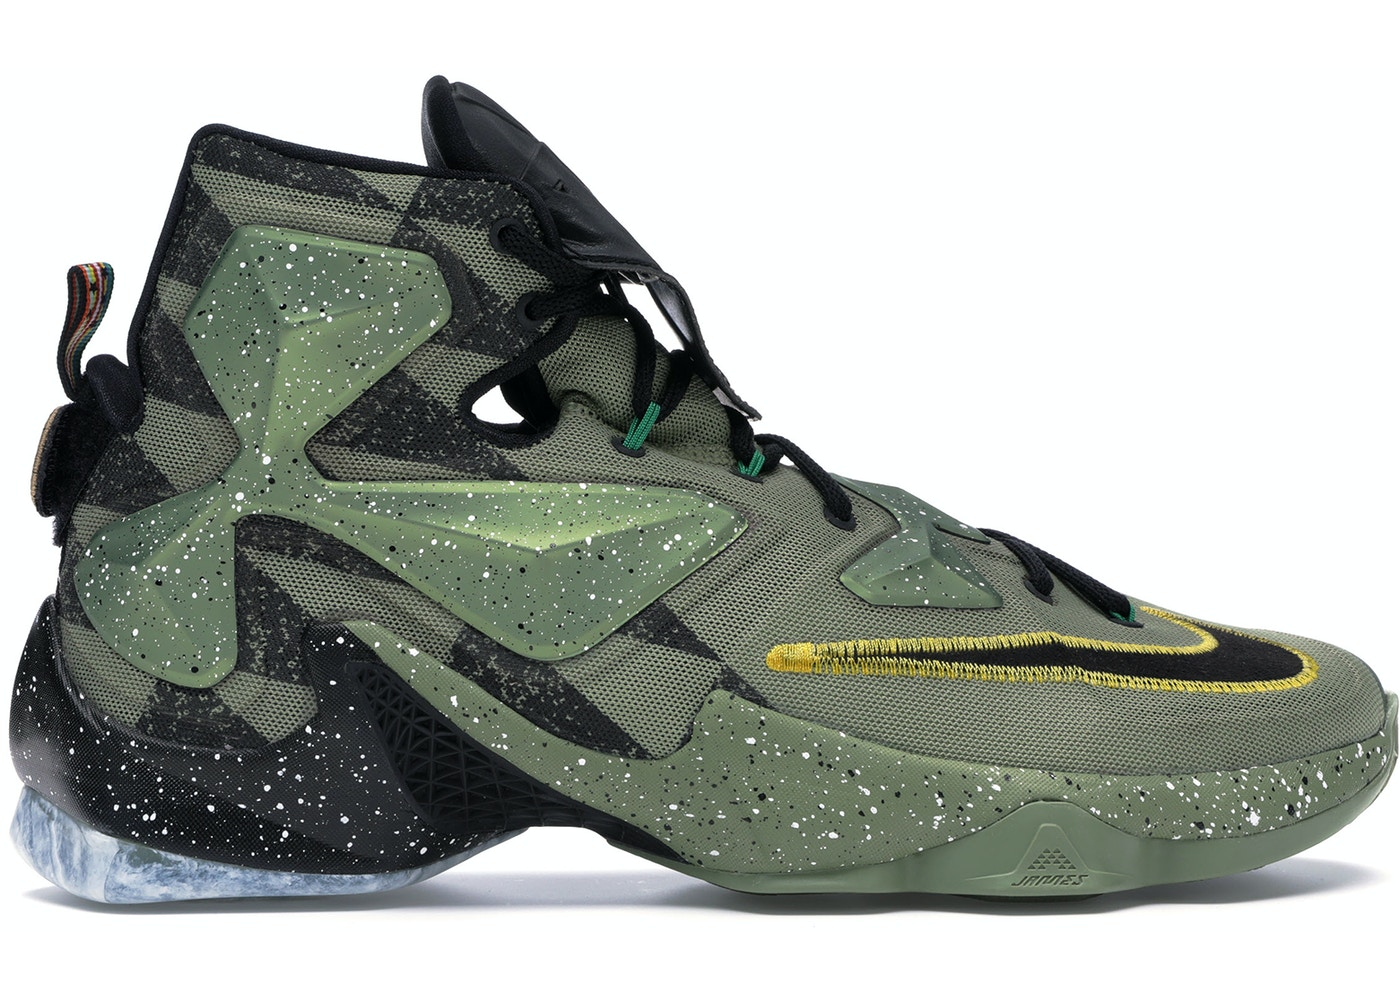 new product f5aaf fd9b4 LeBron 13 All-Star (2016) - 835659-309